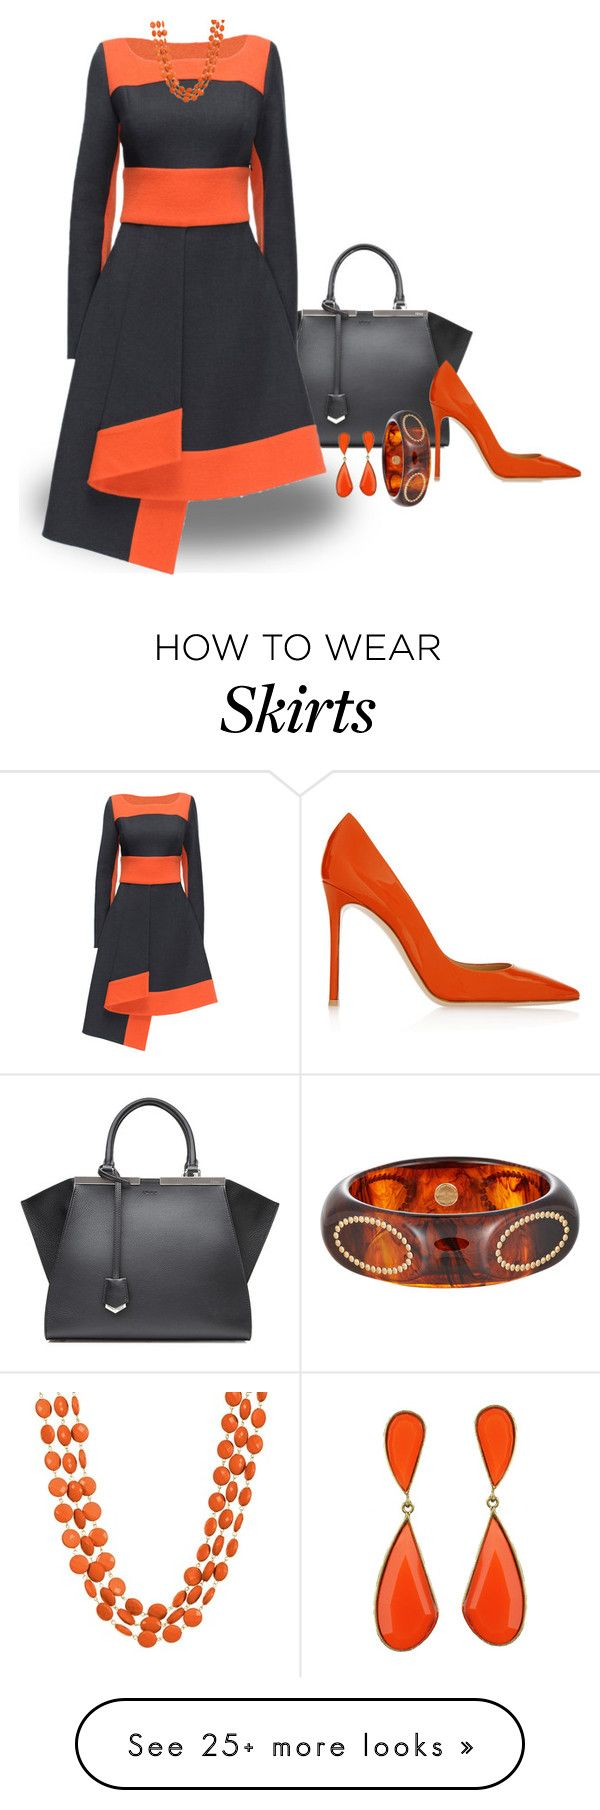 """Twist Skirt"" by stileclassico on Polyvore featuring Fendi, Lattori, Gianvito Rossi, Towne & Reese, Mark Davis, Fall and orange"